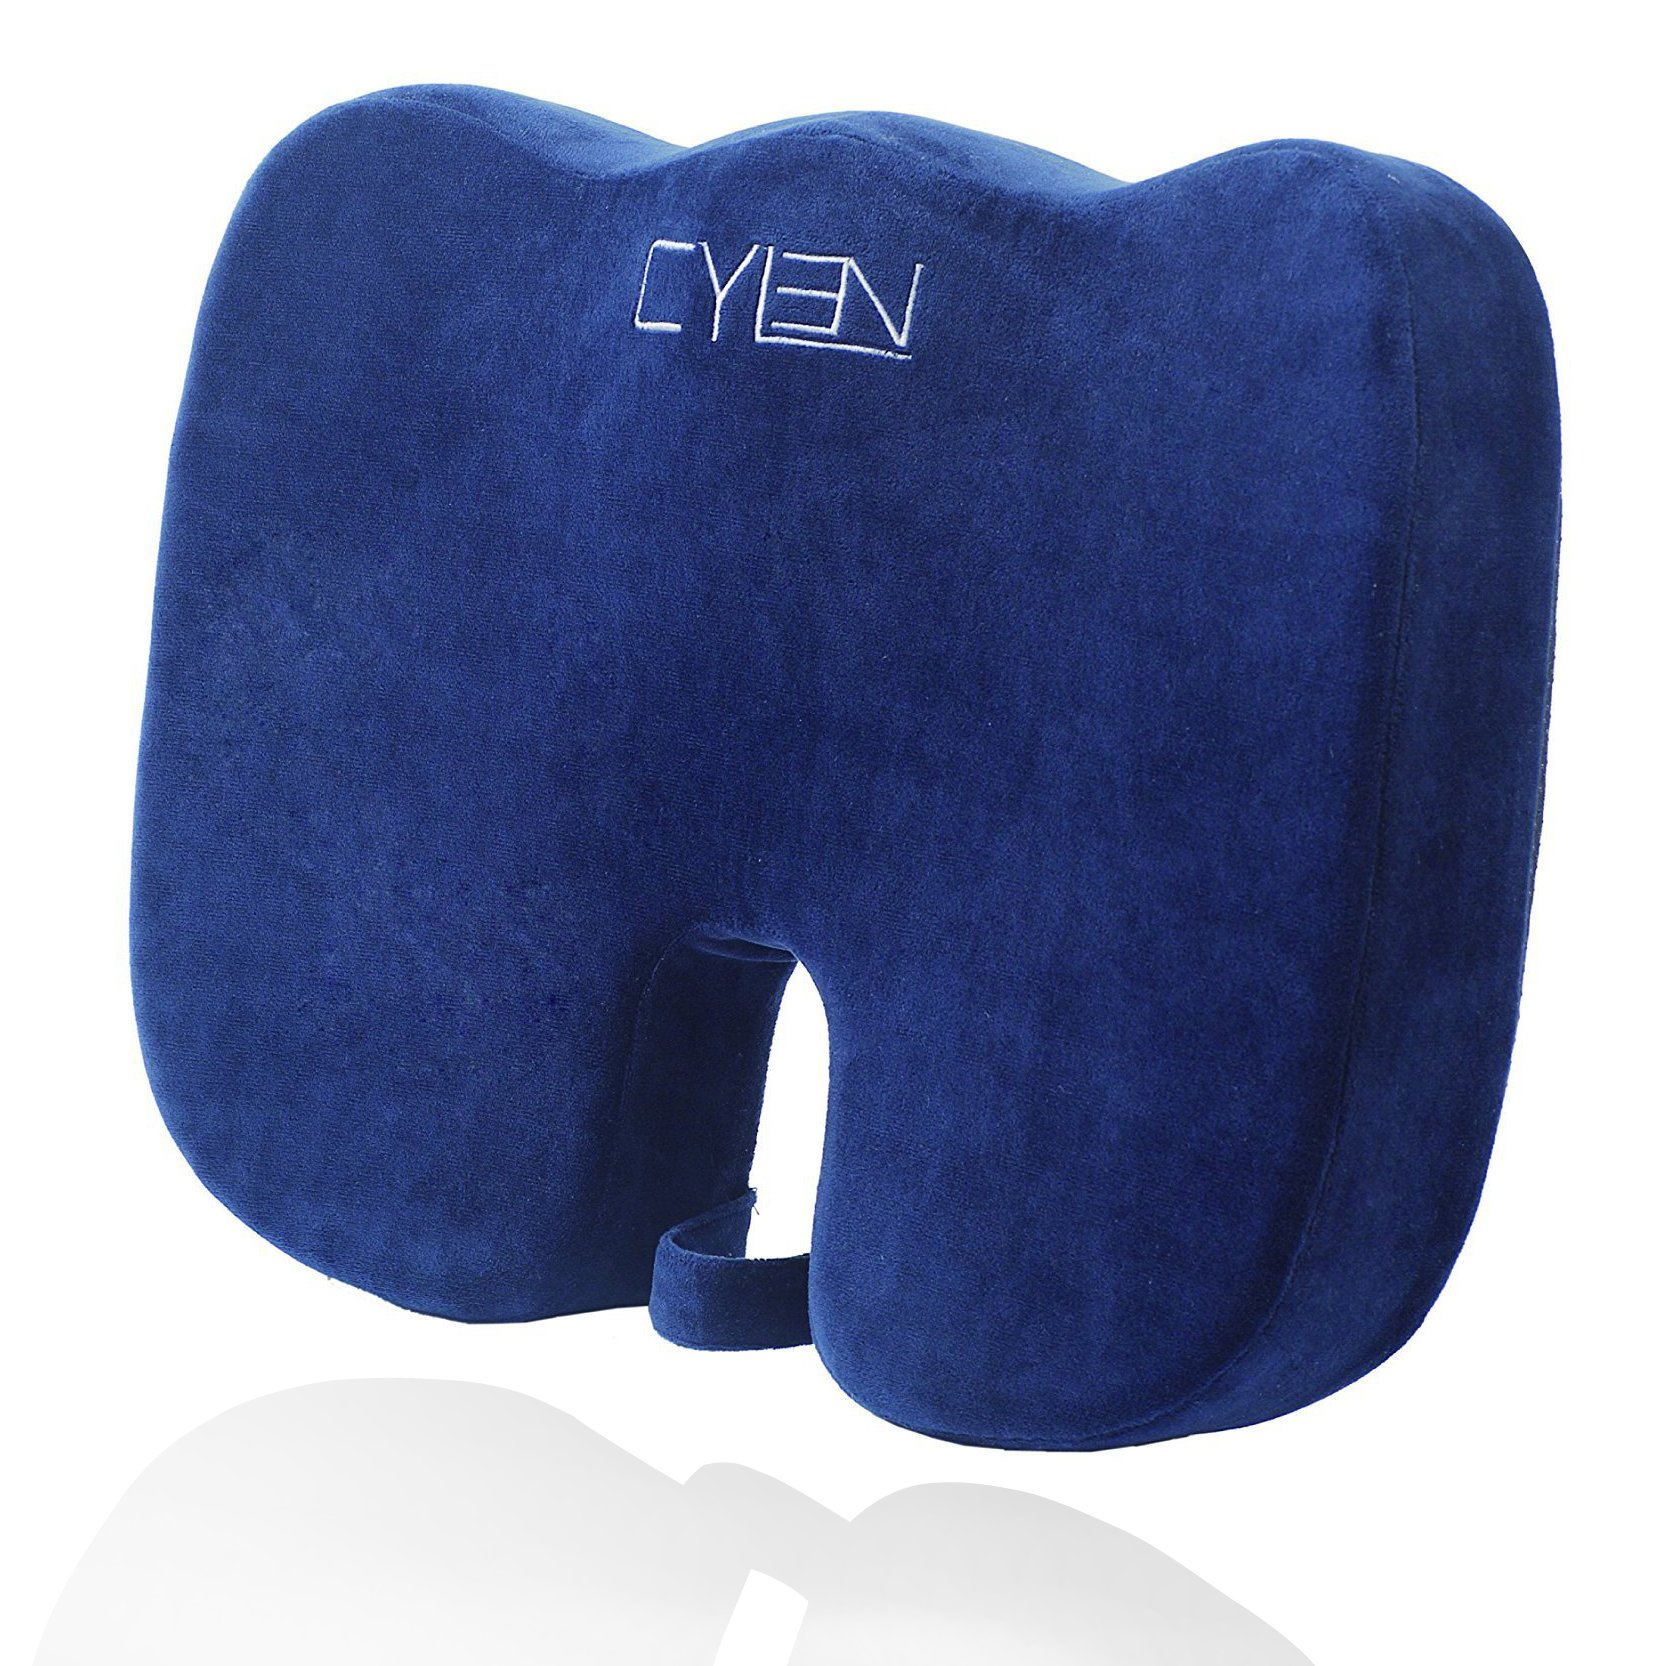 CYLEN -Memory Foam Bamboo Charcoal Infused Ventilated Orthopedic Seat Cushion for Car and Office Chair - Washable & Breathable Cover (Navy Blue)